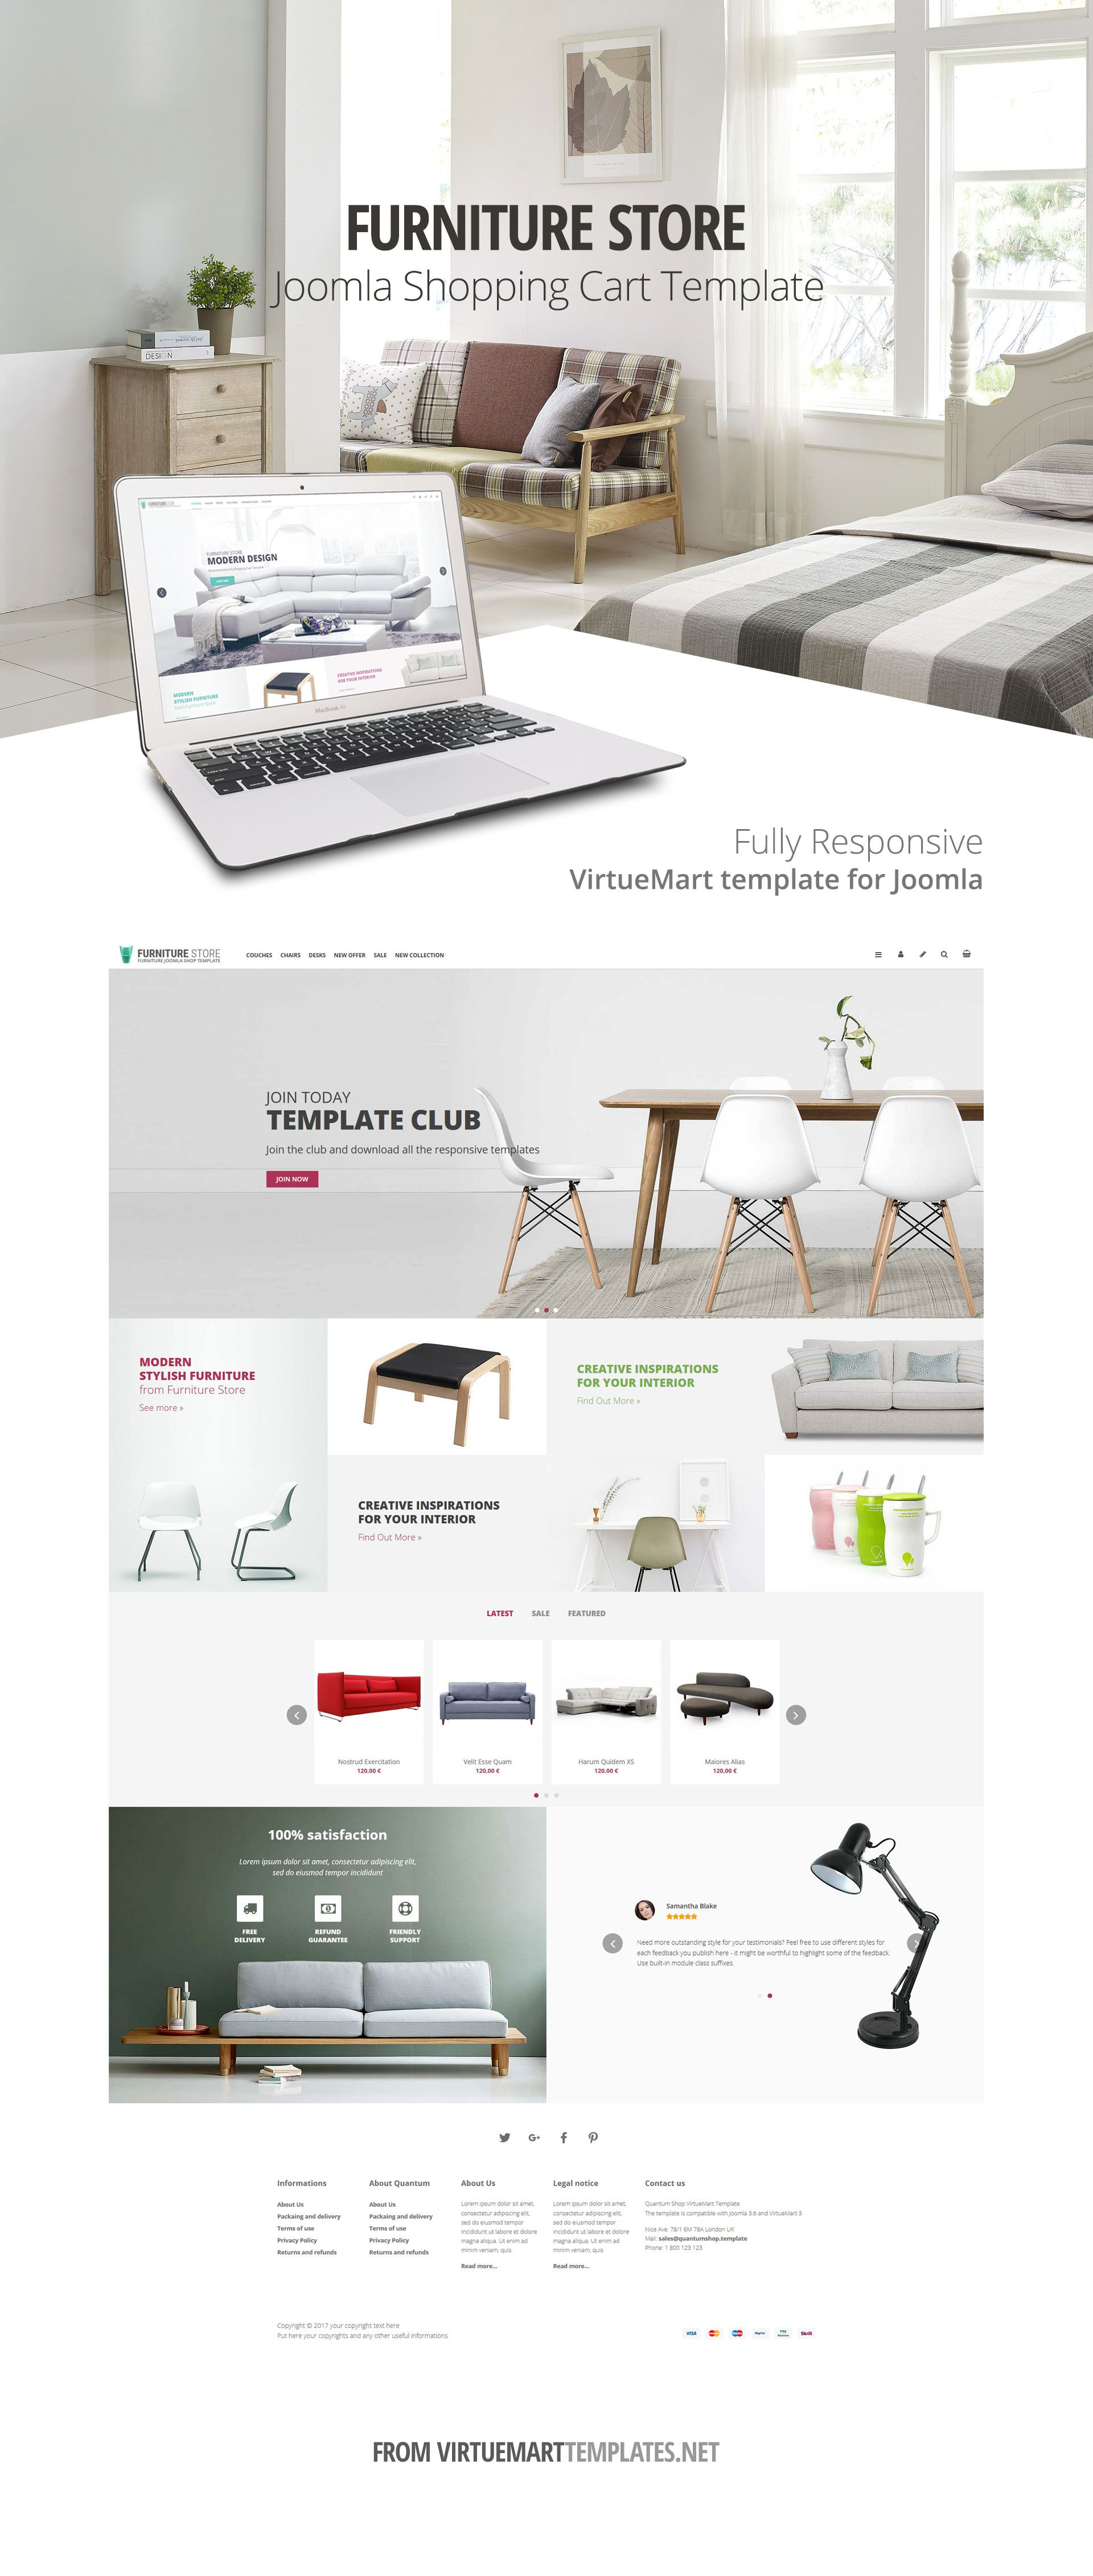 Furniture Store is a fully responsive Joomla shop template we